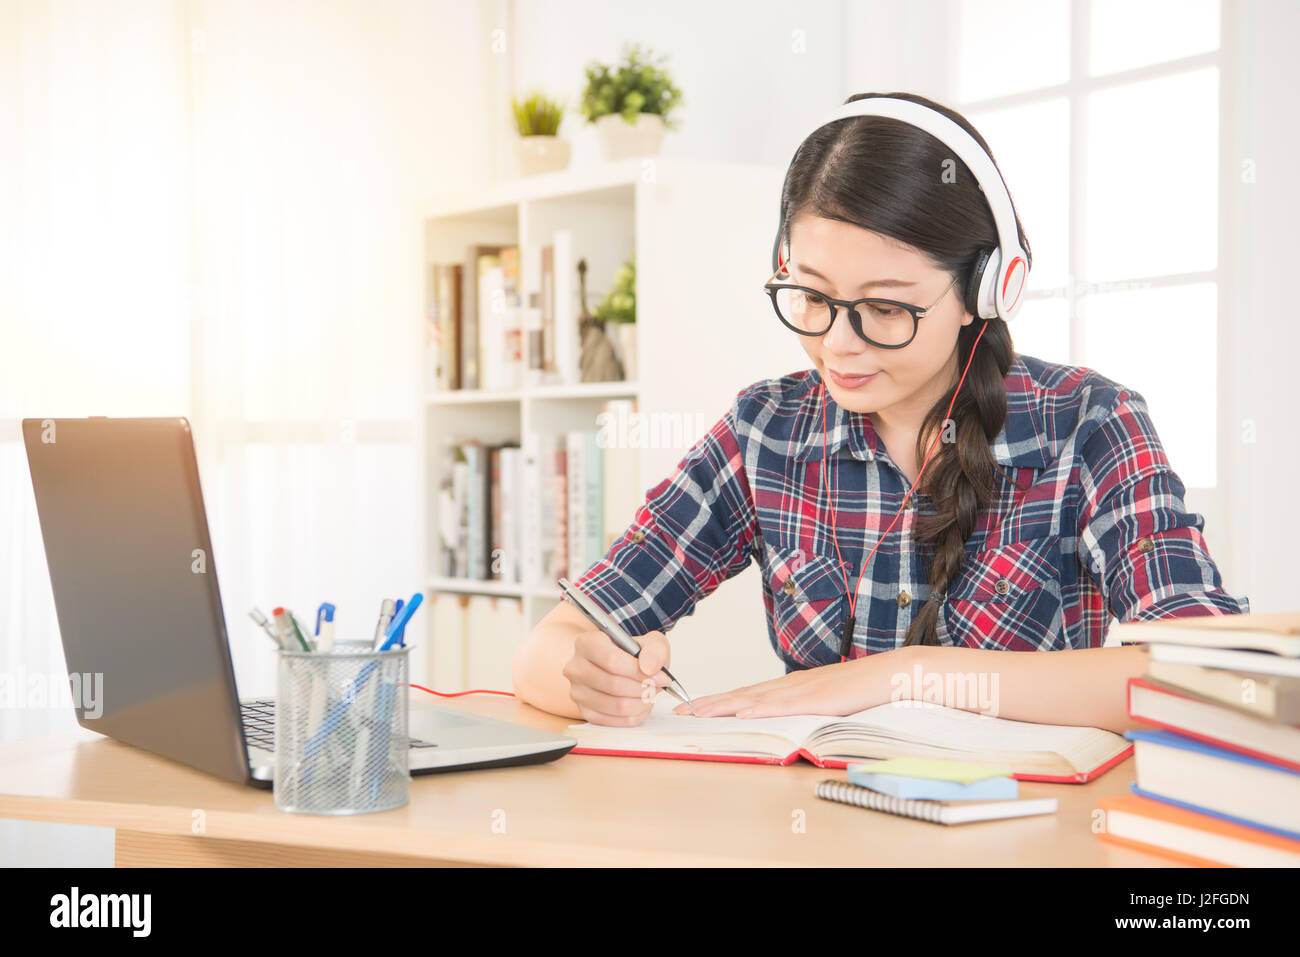 Portrait of a student learning on line with headphones and laptop taking notes in a notebook sitting at her desk - Stock Image